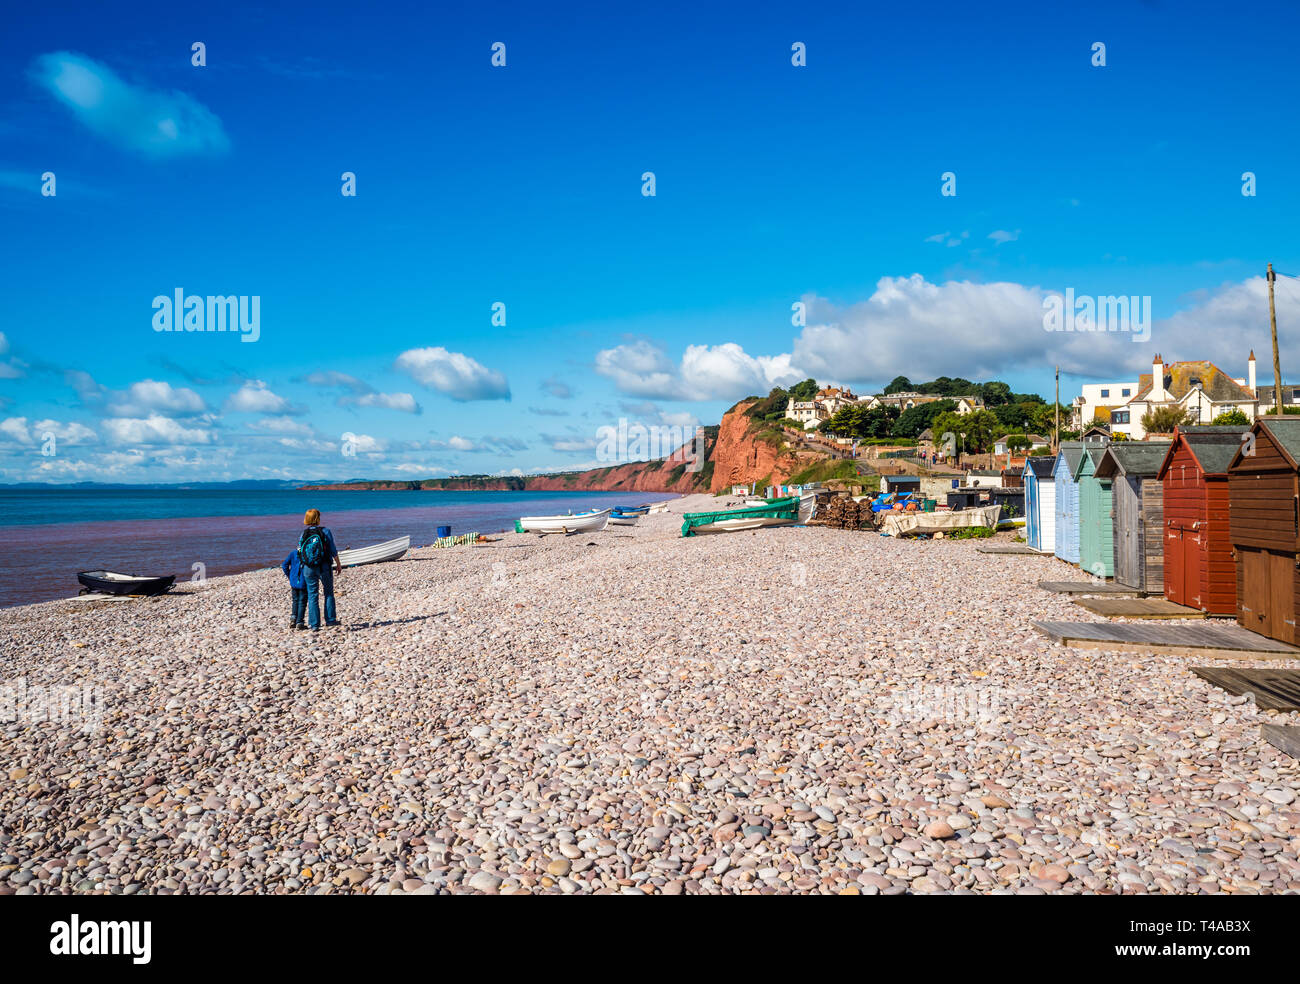 Beach, boats and a  lovely day at Budleigh Salterton. - Stock Image